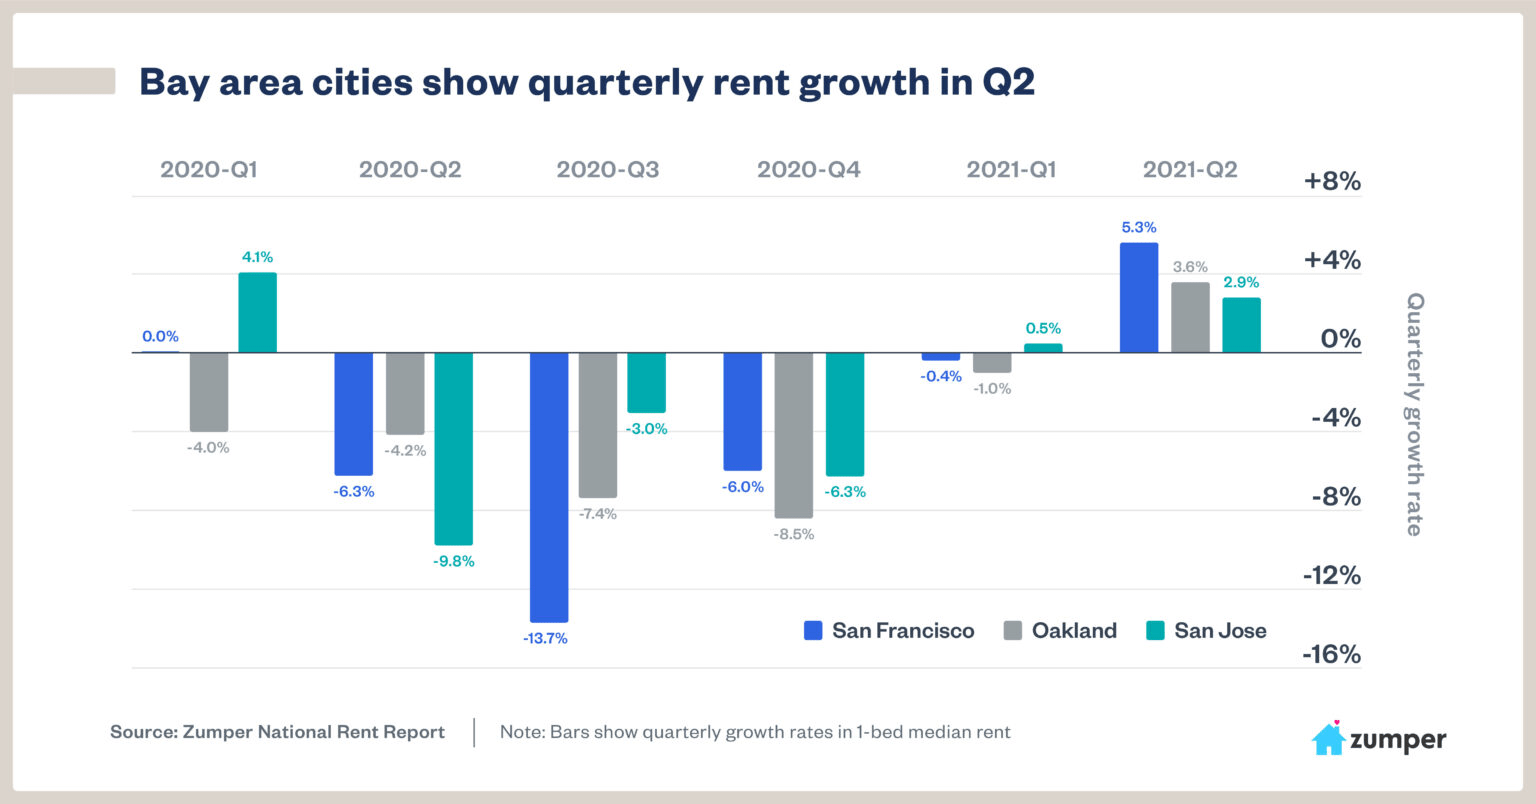 San Francisco Bay Area Real Estate Quarterly rent growth in Q2 2021 Making A Comeback